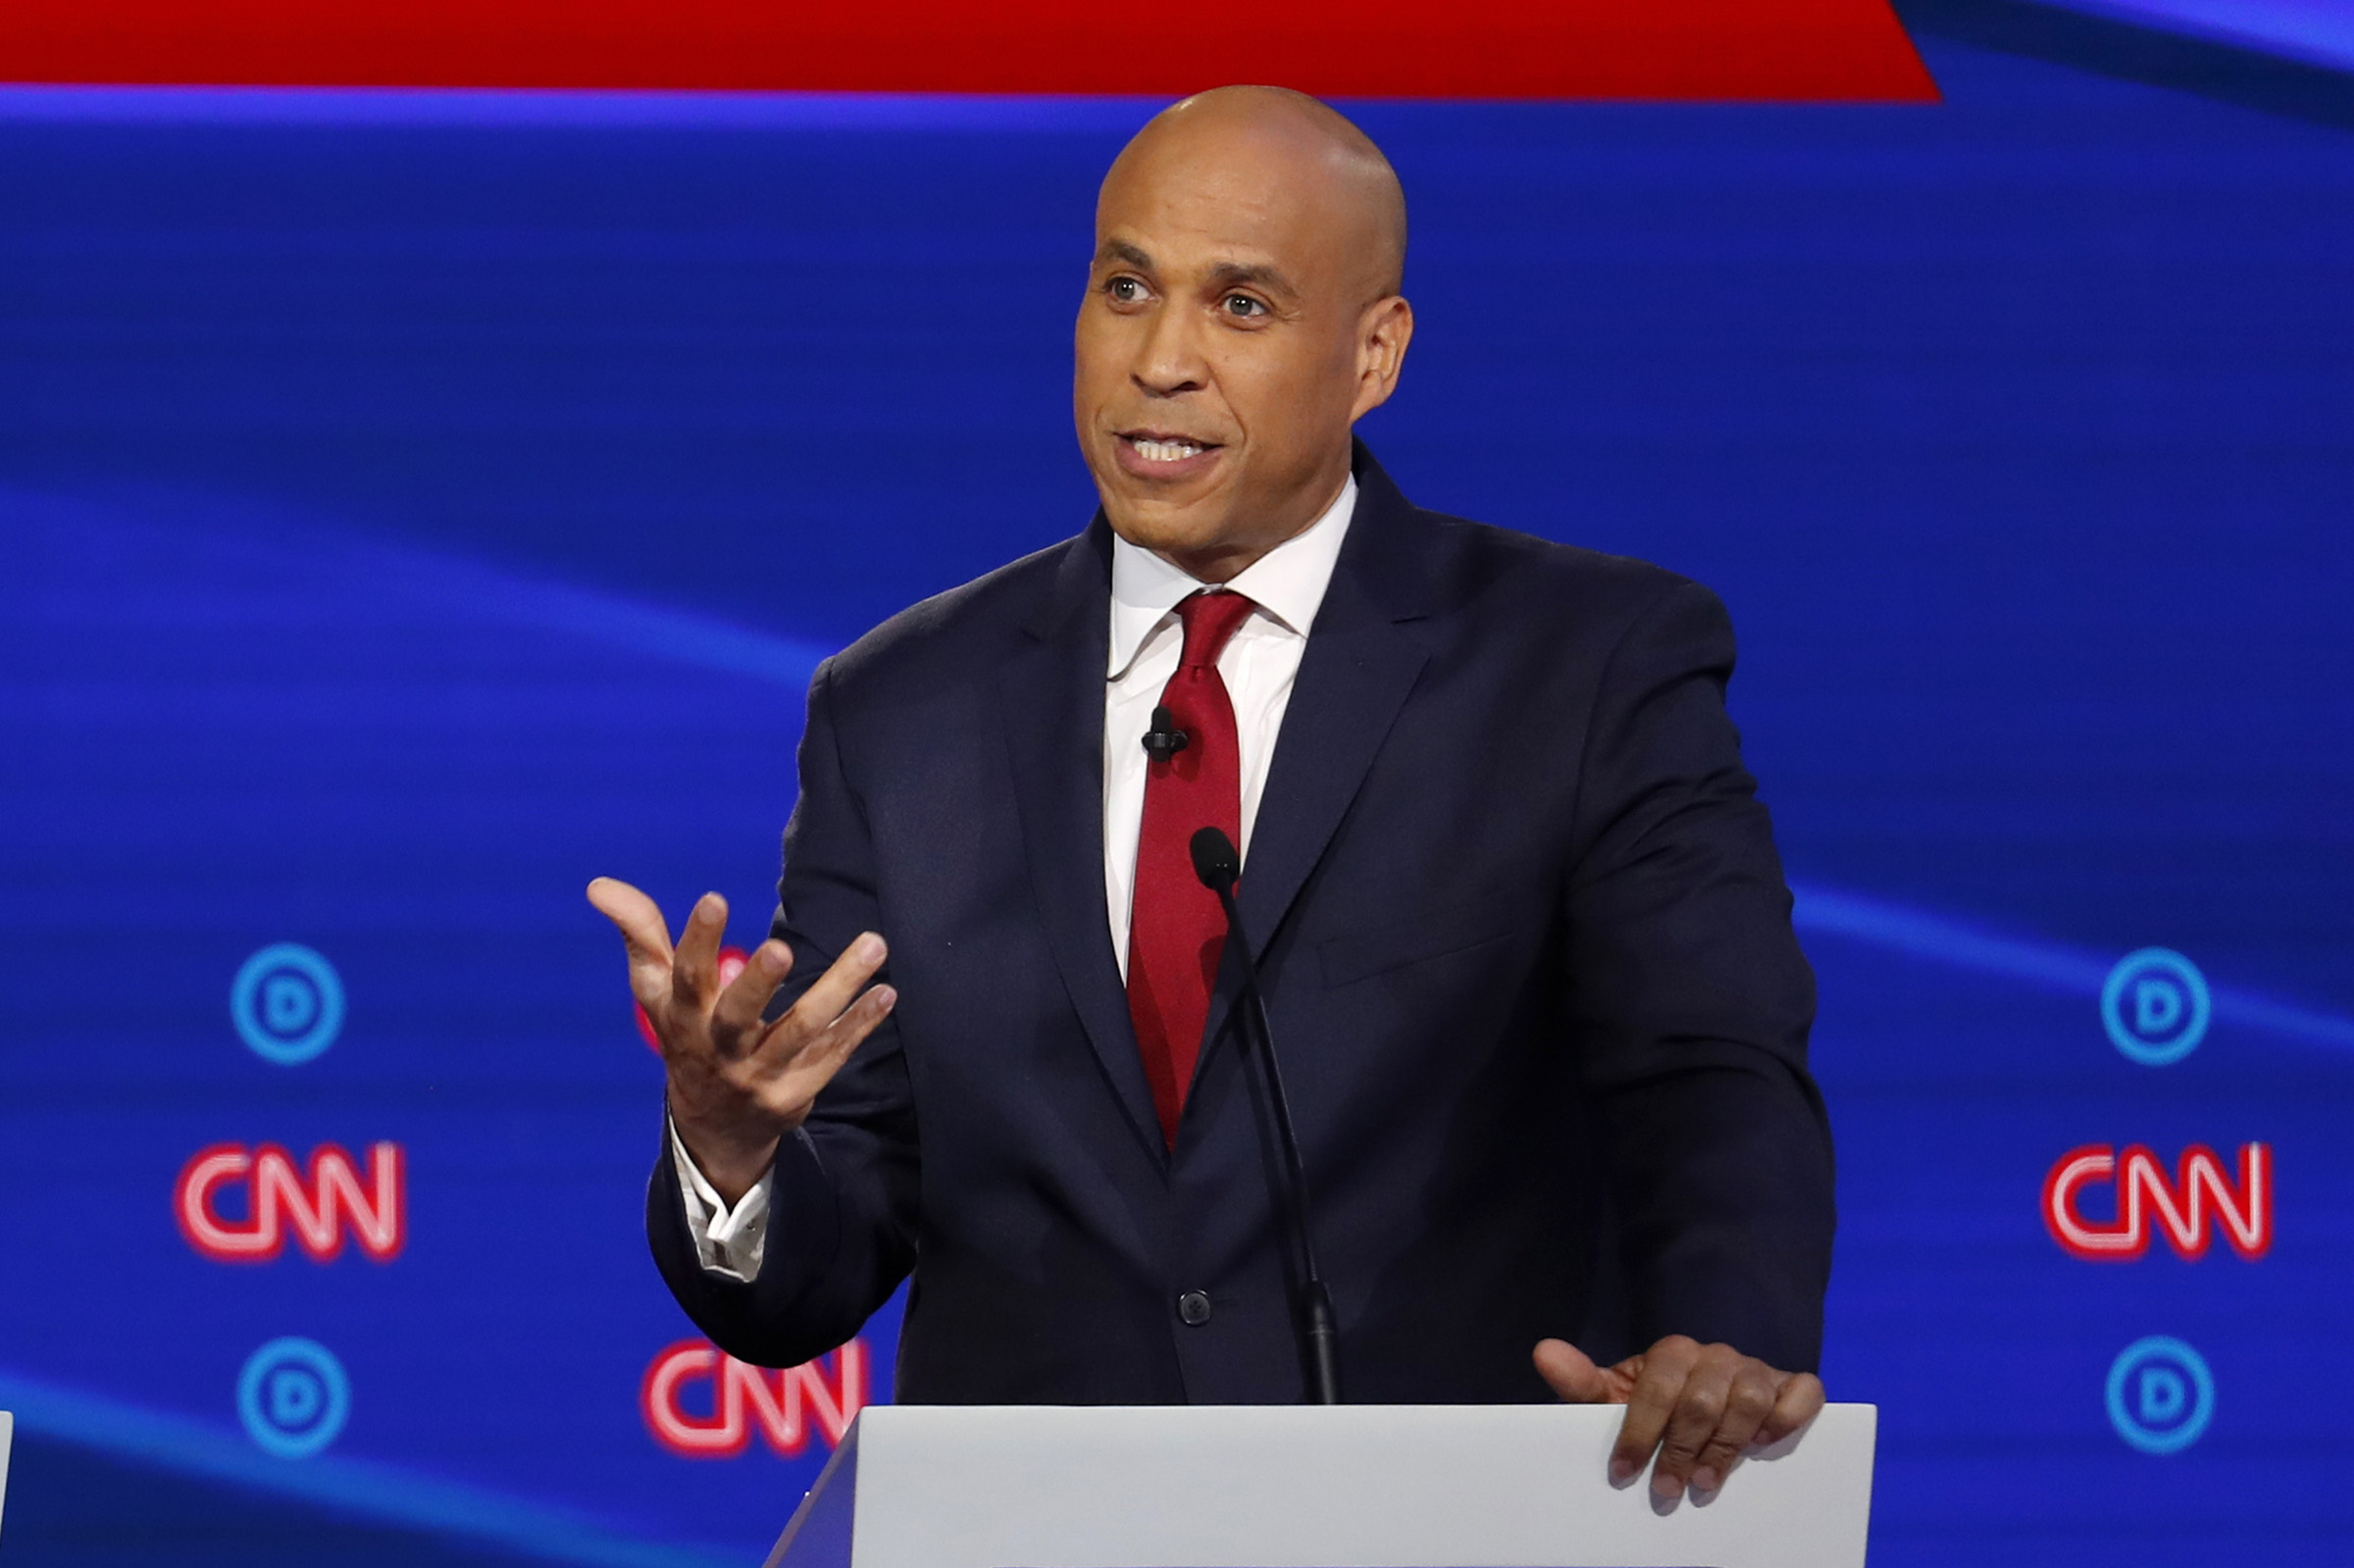 Democratic presidential candidate Sen. Cory Booker, D-N.J., speaks during a Democratic presidential primary debate at Otterbein University, on Oct. 15, 2019, in Westerville, Ohio.